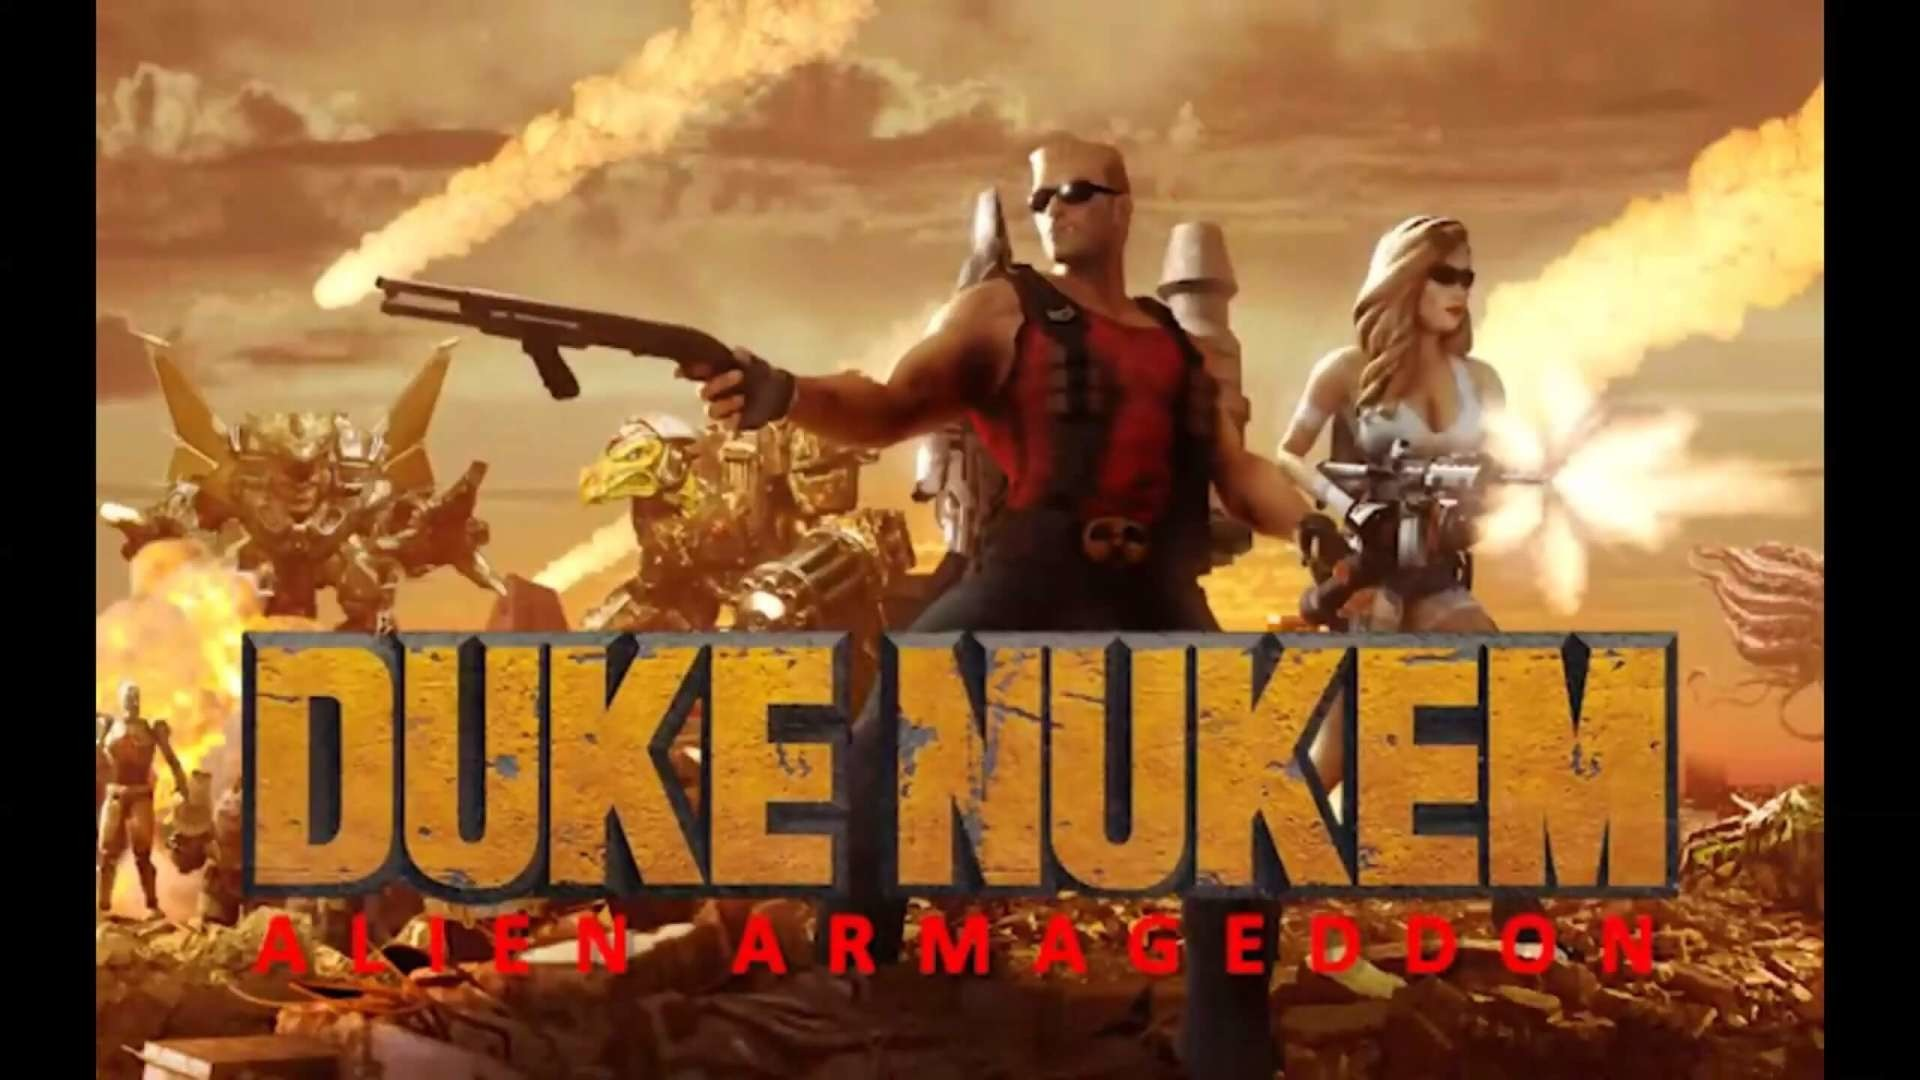 Duke Nukem 3D Alien Armageddon V40 is now available